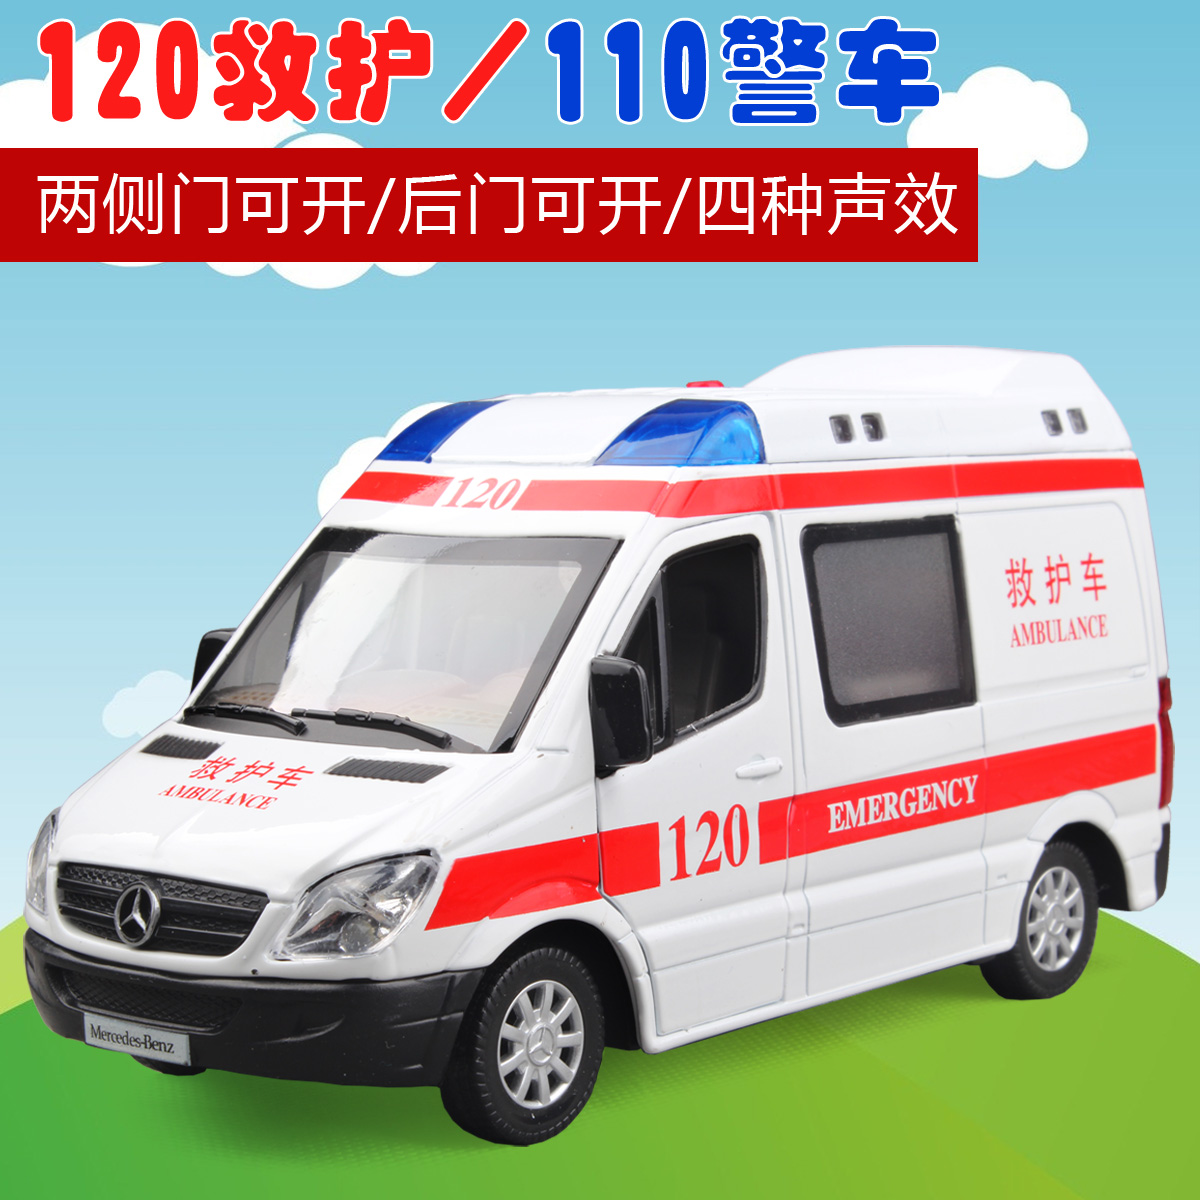 Caipo benz 120 police ambulance ambulance alloy car model toy car children toy car